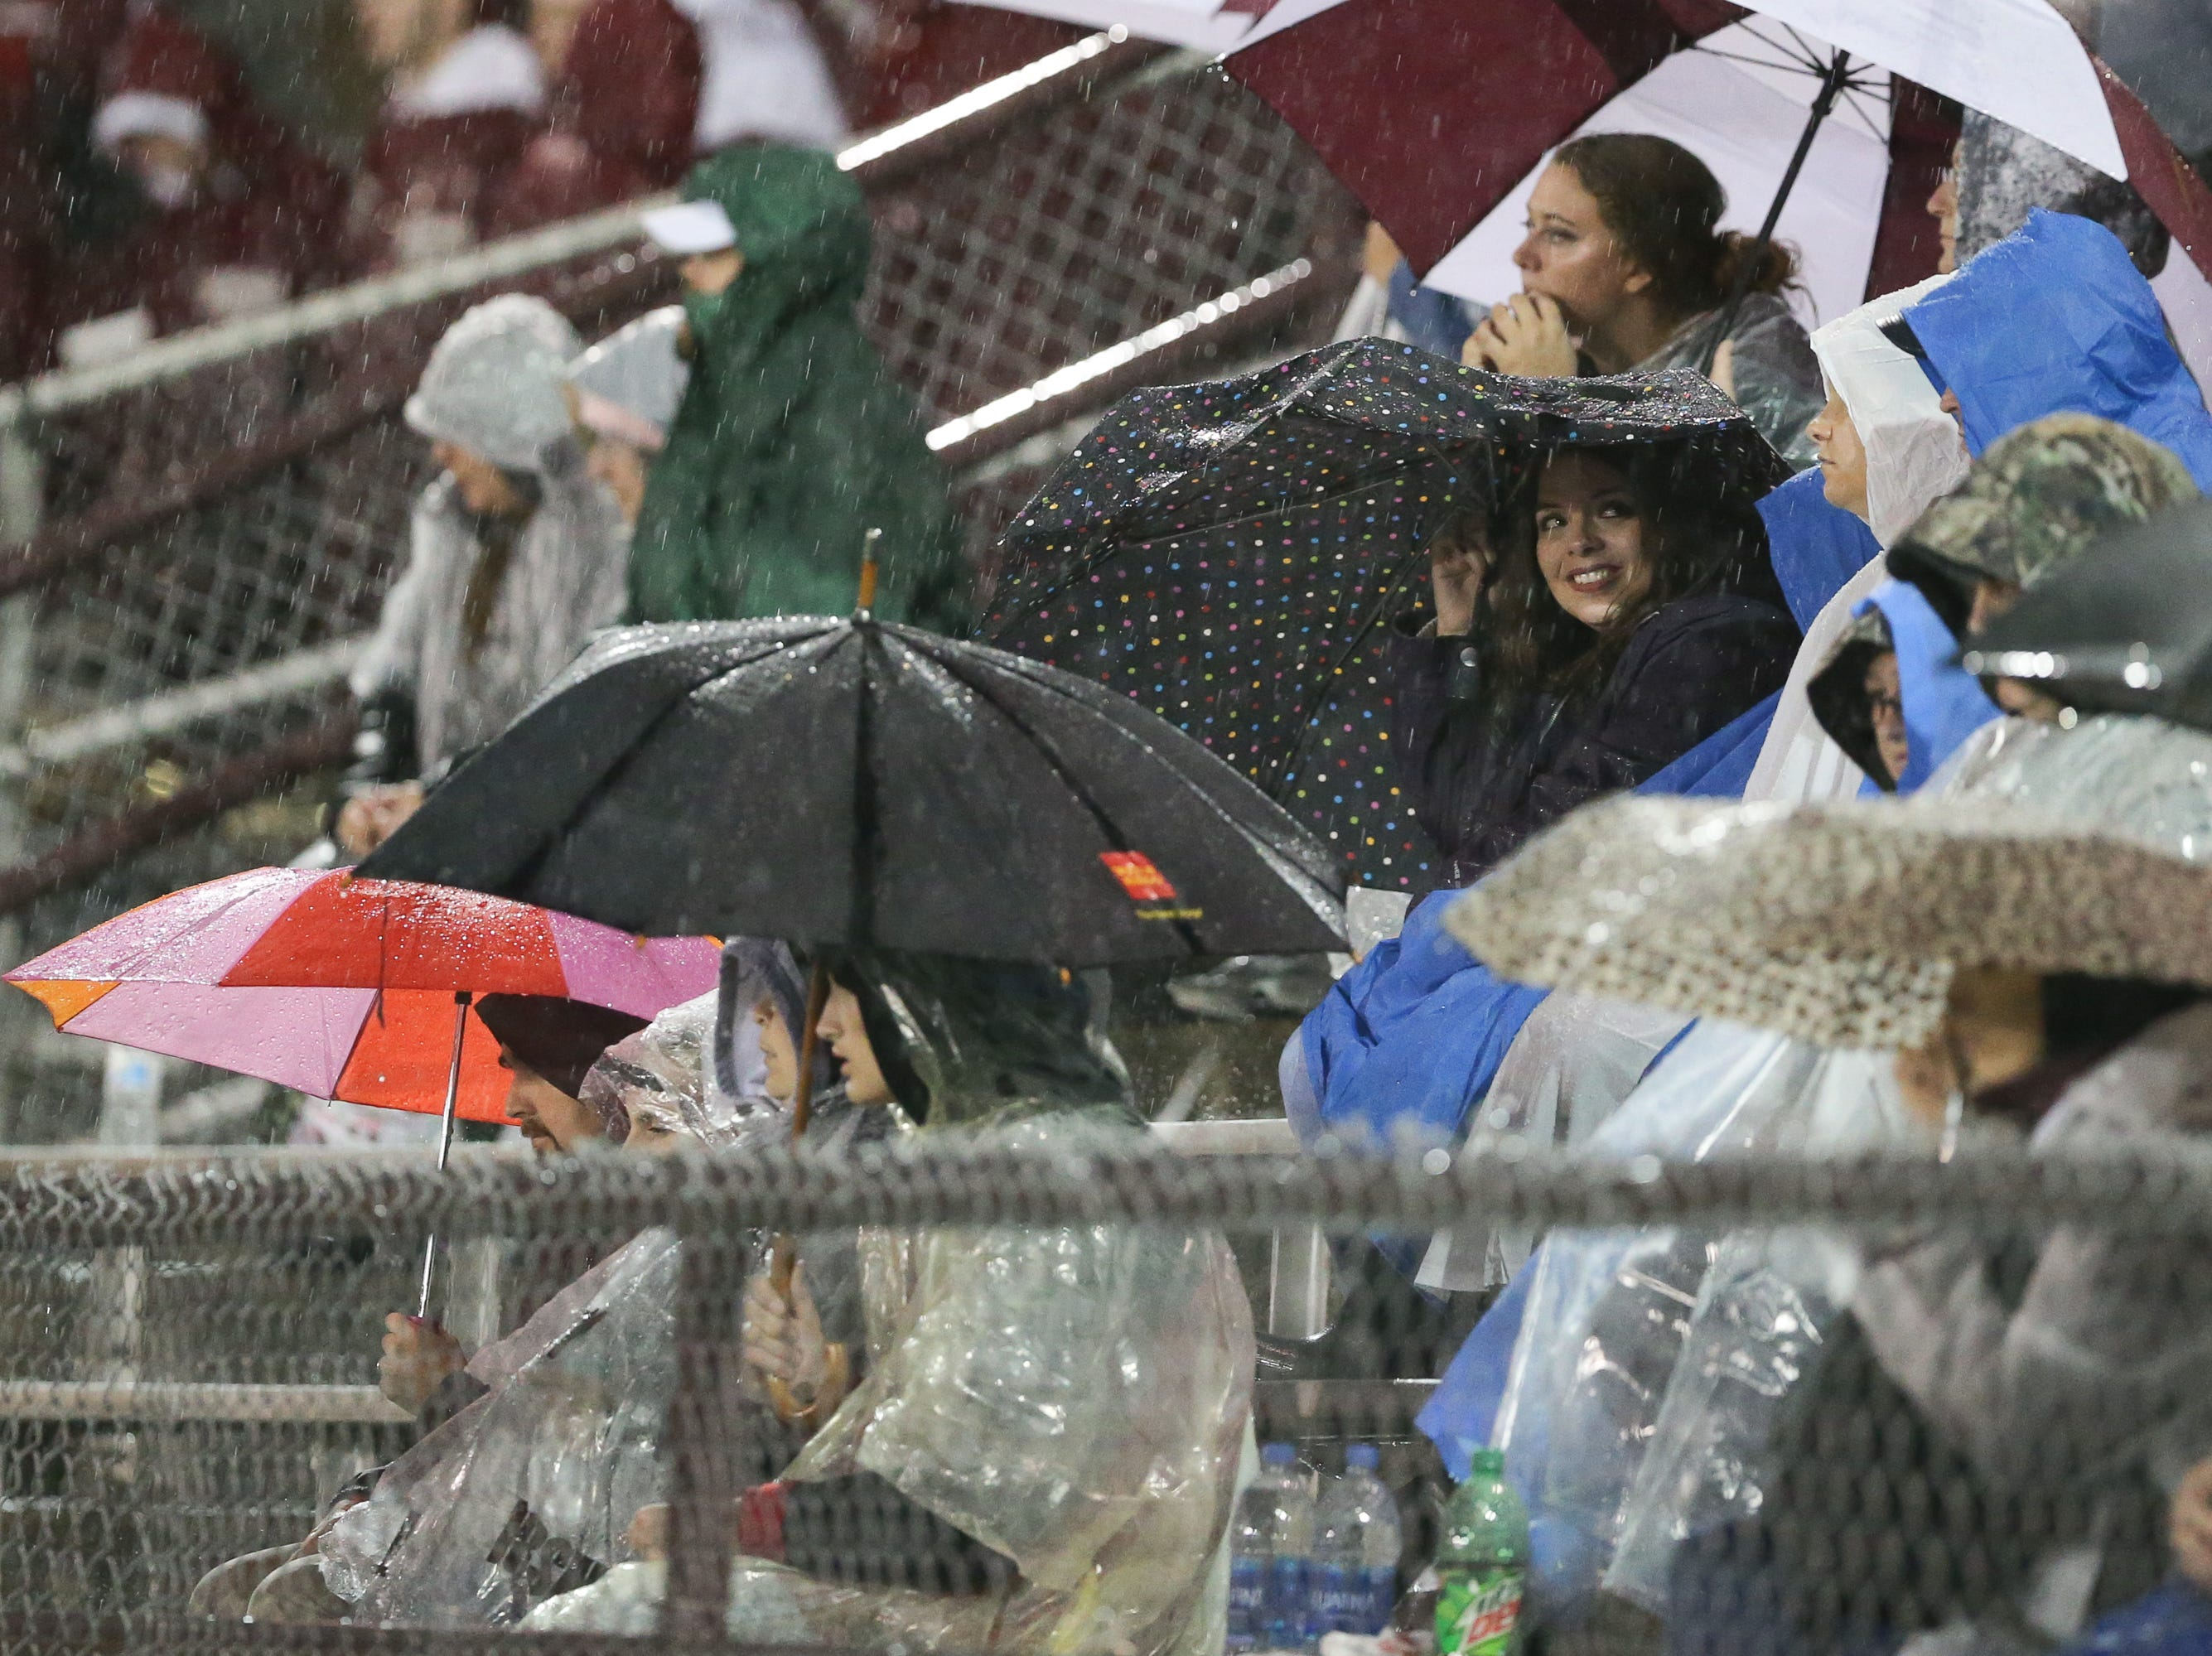 Dedicated fans brave the pouring rain. The Shippensburg Greyhounds defeated Northeastern, 6-0 in a playoff game at Shippensburg on Friday, Nov. 2, 2018.